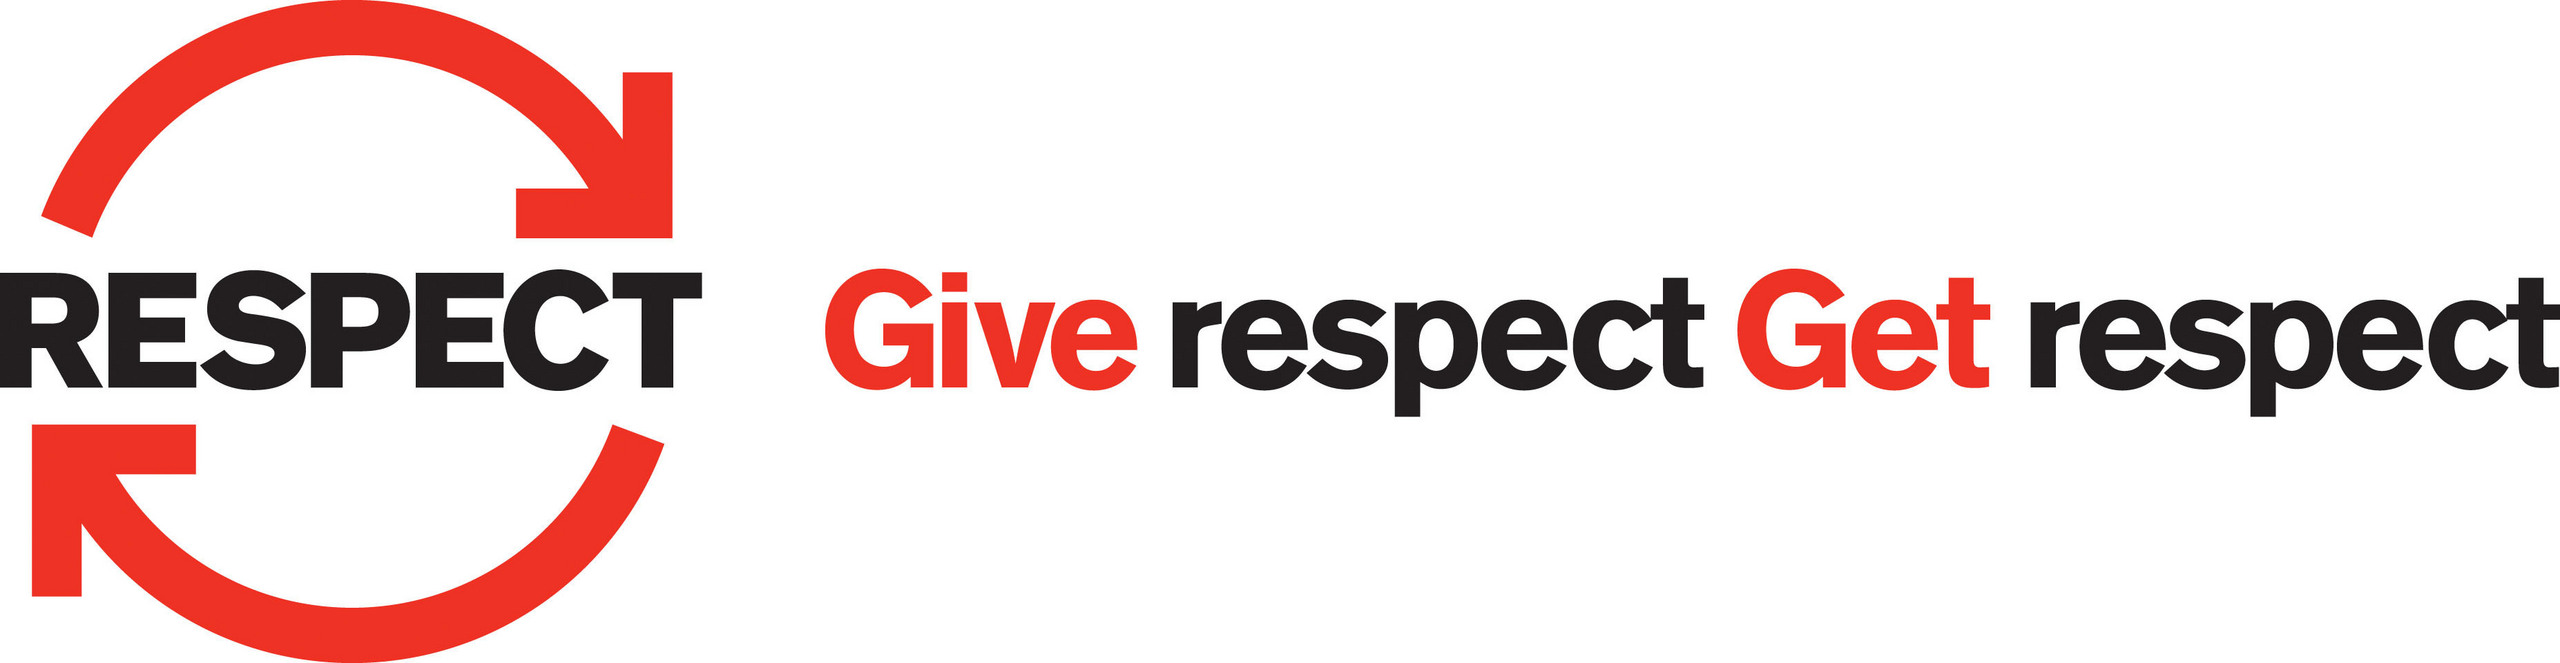 stop perverting and start respecting... images respect HD ...